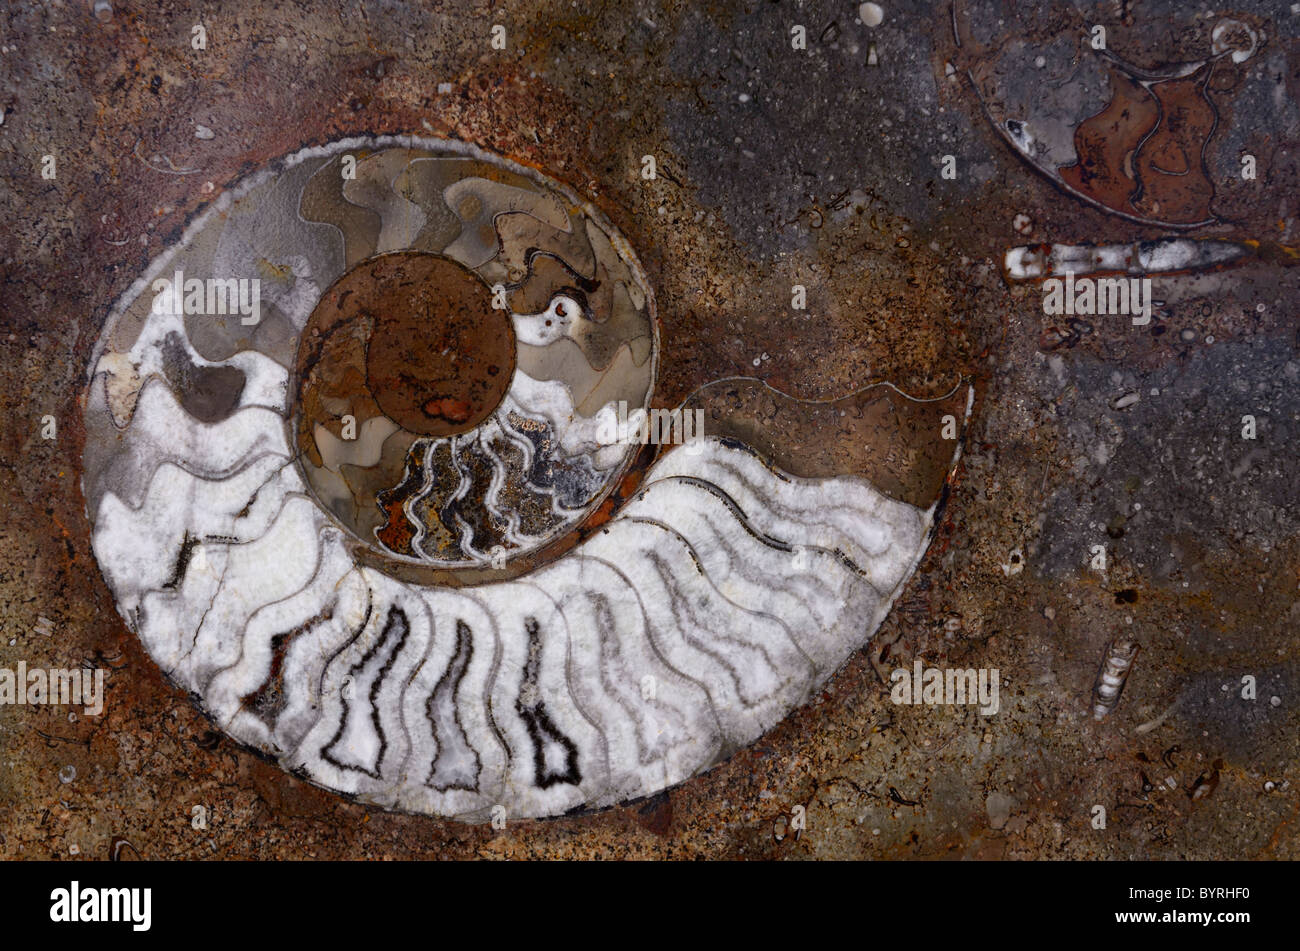 Polished rock of colorful fossils of ammonite spiral shells from Morocco Stock Photo